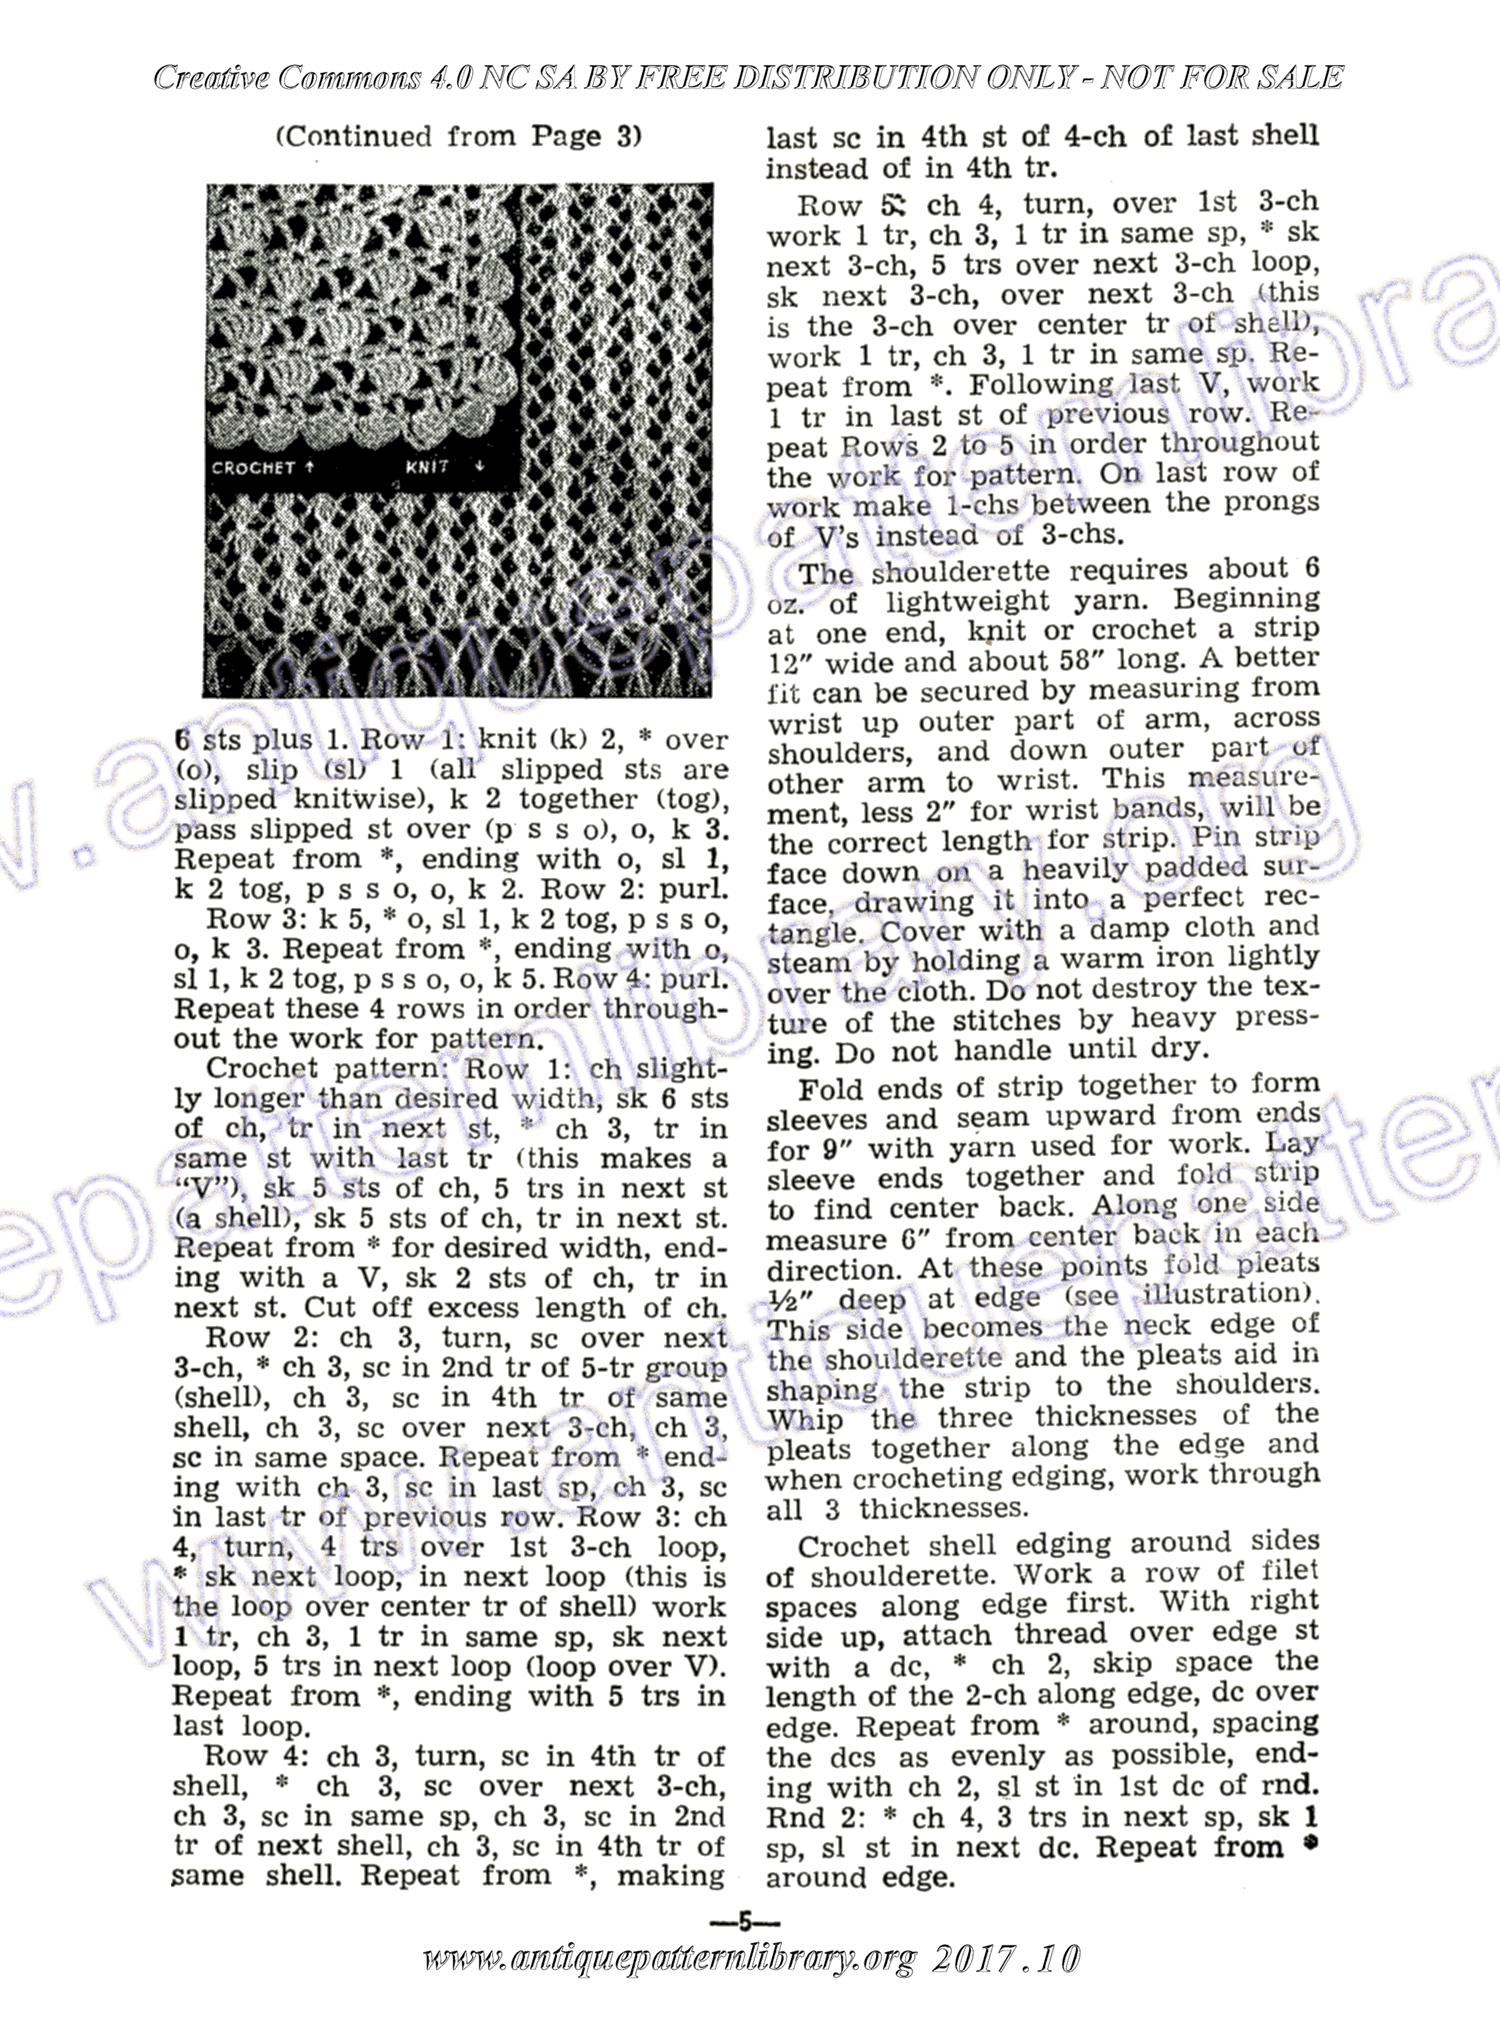 APL - H-ME001 The Workbasket Magazine Vol. 9 No. 12 Page 5 - Knitted ...